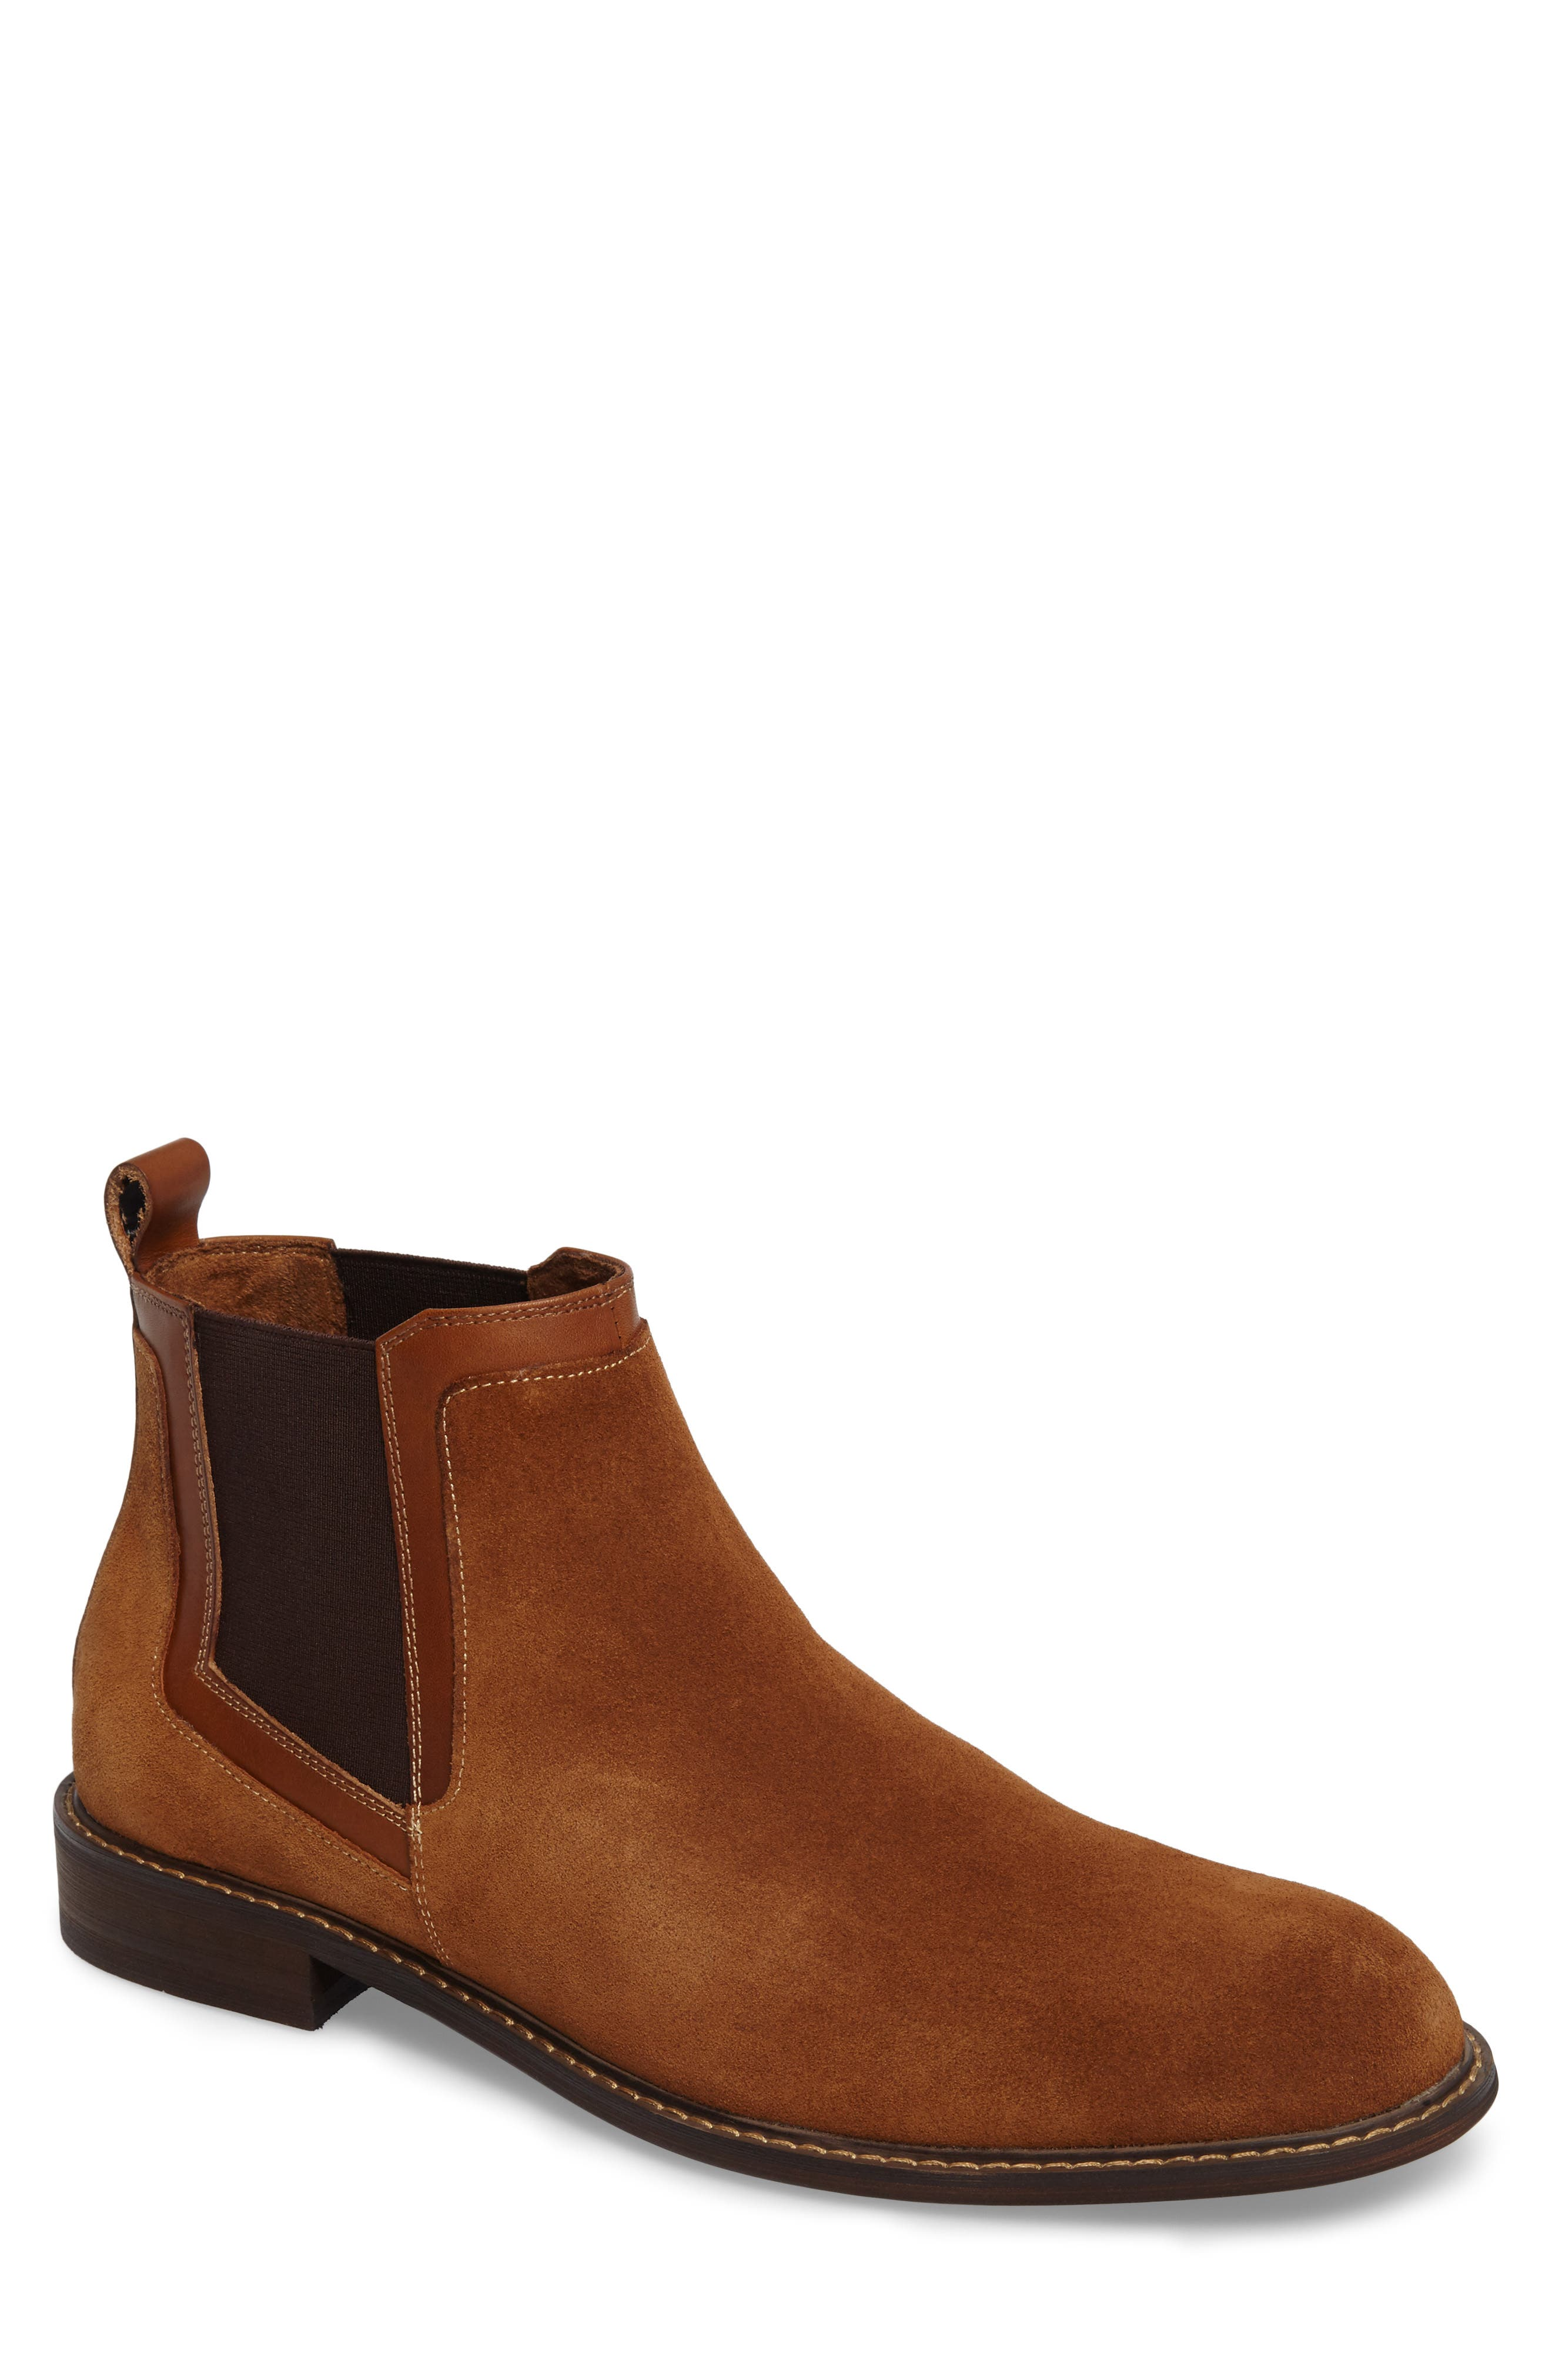 Main Image - Kenneth Cole New York Chlesea Boot (Men)